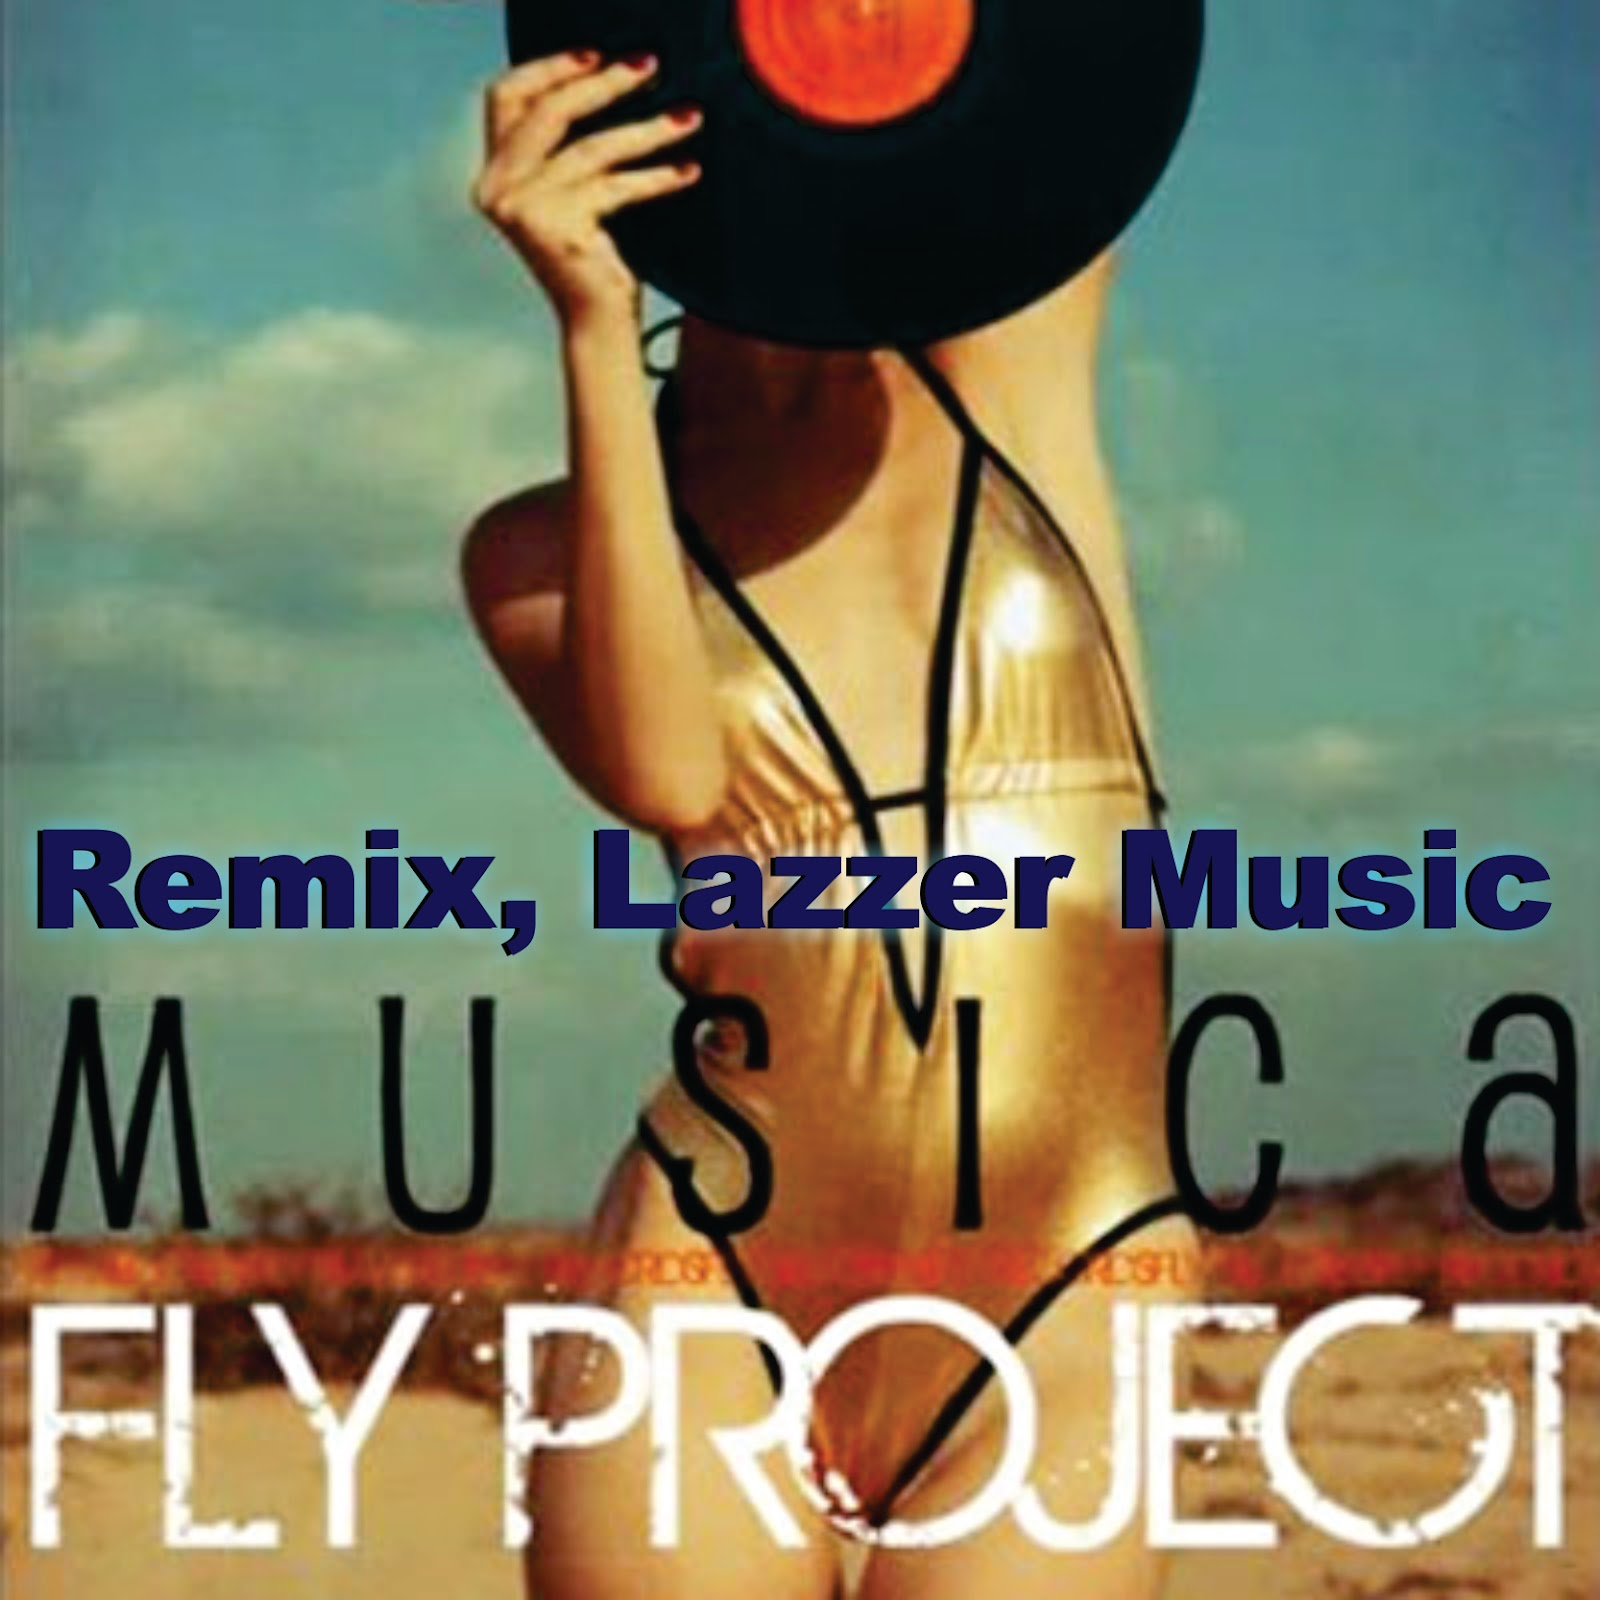 Cover Album Fly Project Musica Fly Project Música Remix